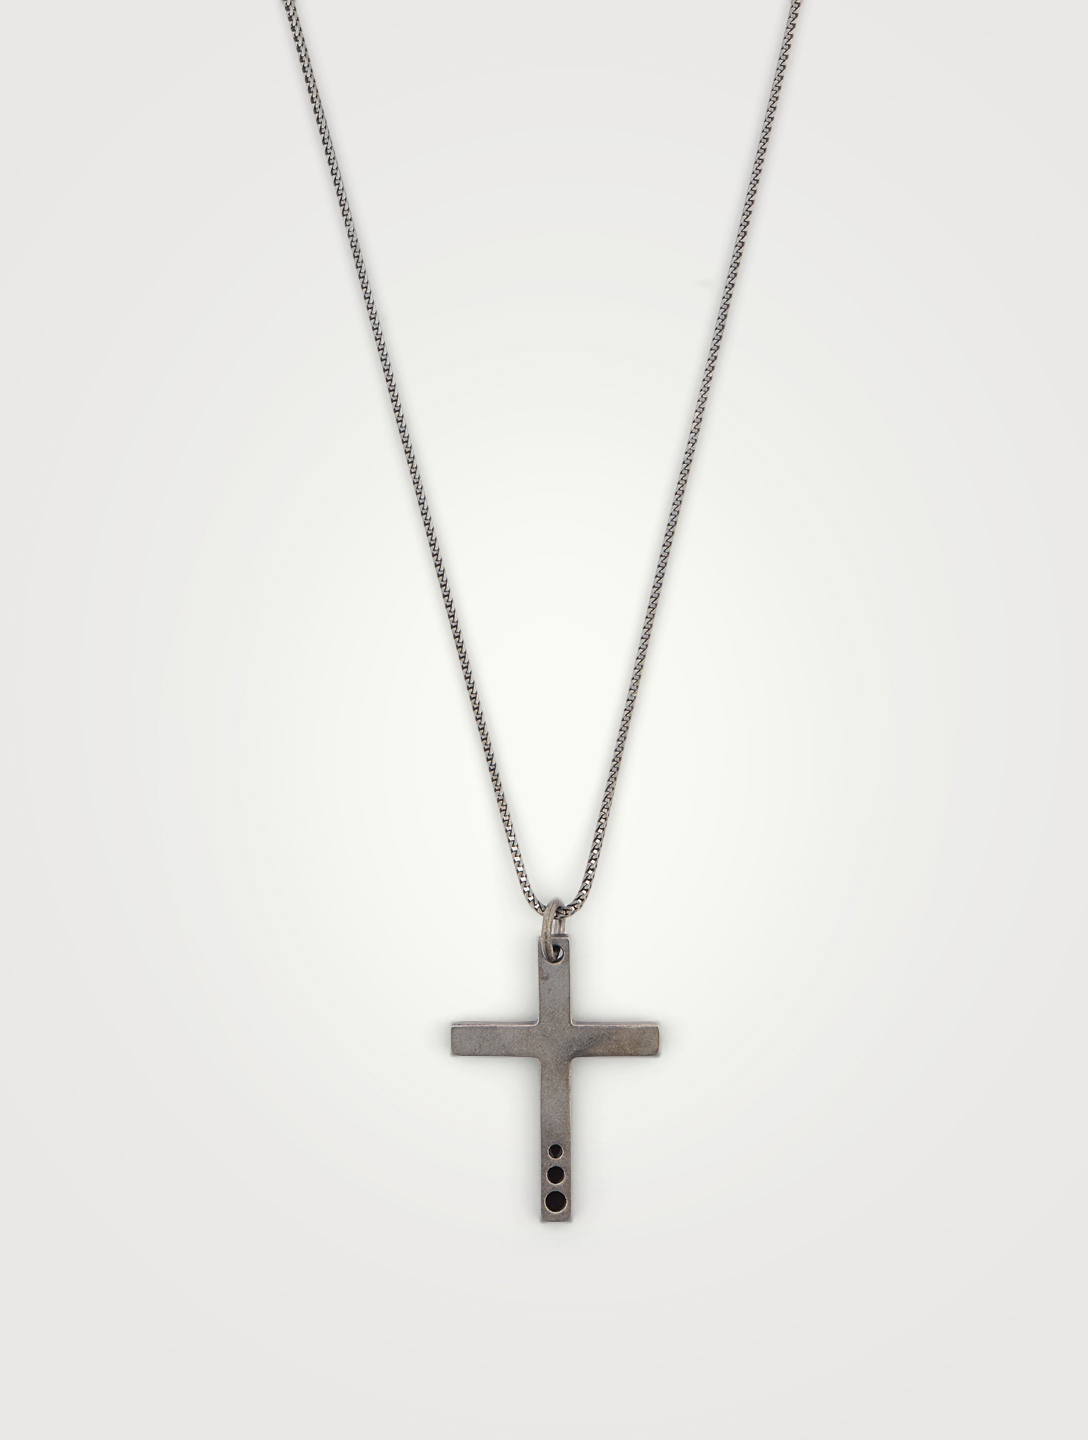 MARCO DAL MASO The Cross Oxidized Silver Wide Pendant Necklace With Black Enamel Men's Black